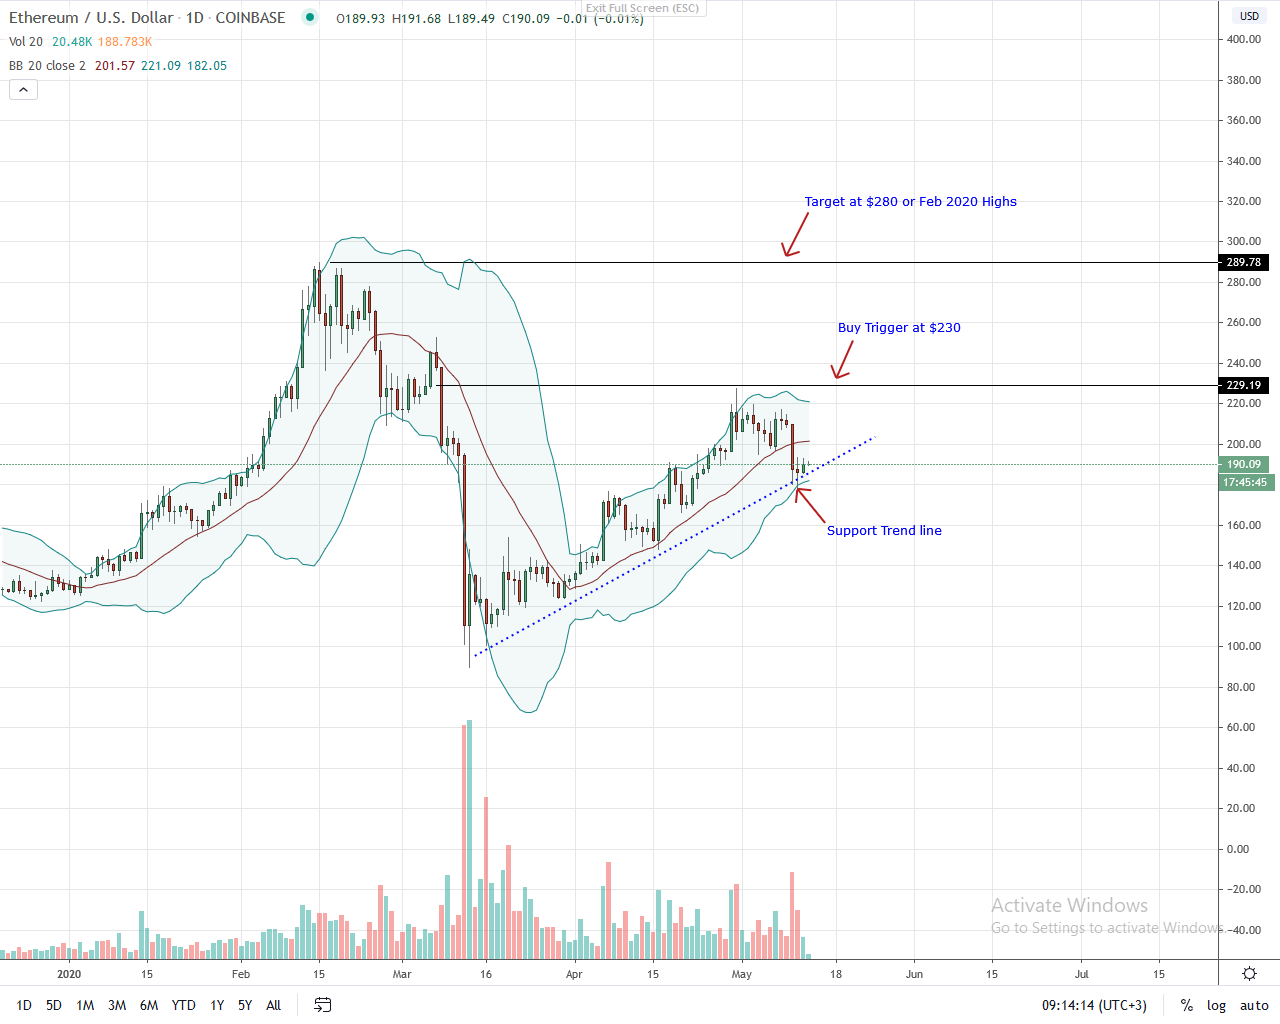 Ethereum Daily Chart for May 13